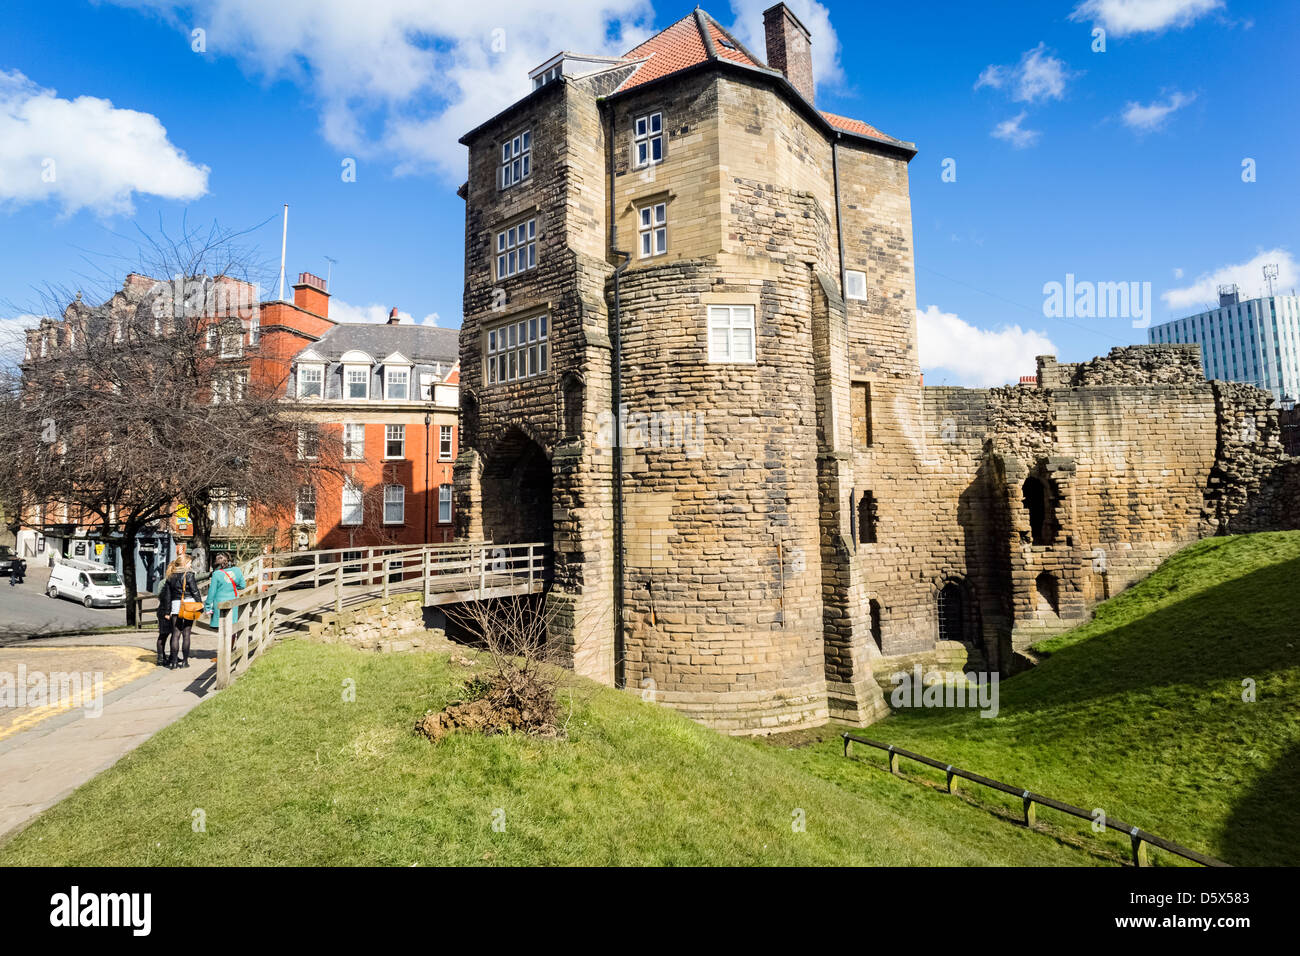 Newcastle Keep. The Castle is a medieval fortification in England, which gave the City of Newcastle its name. - Stock Image